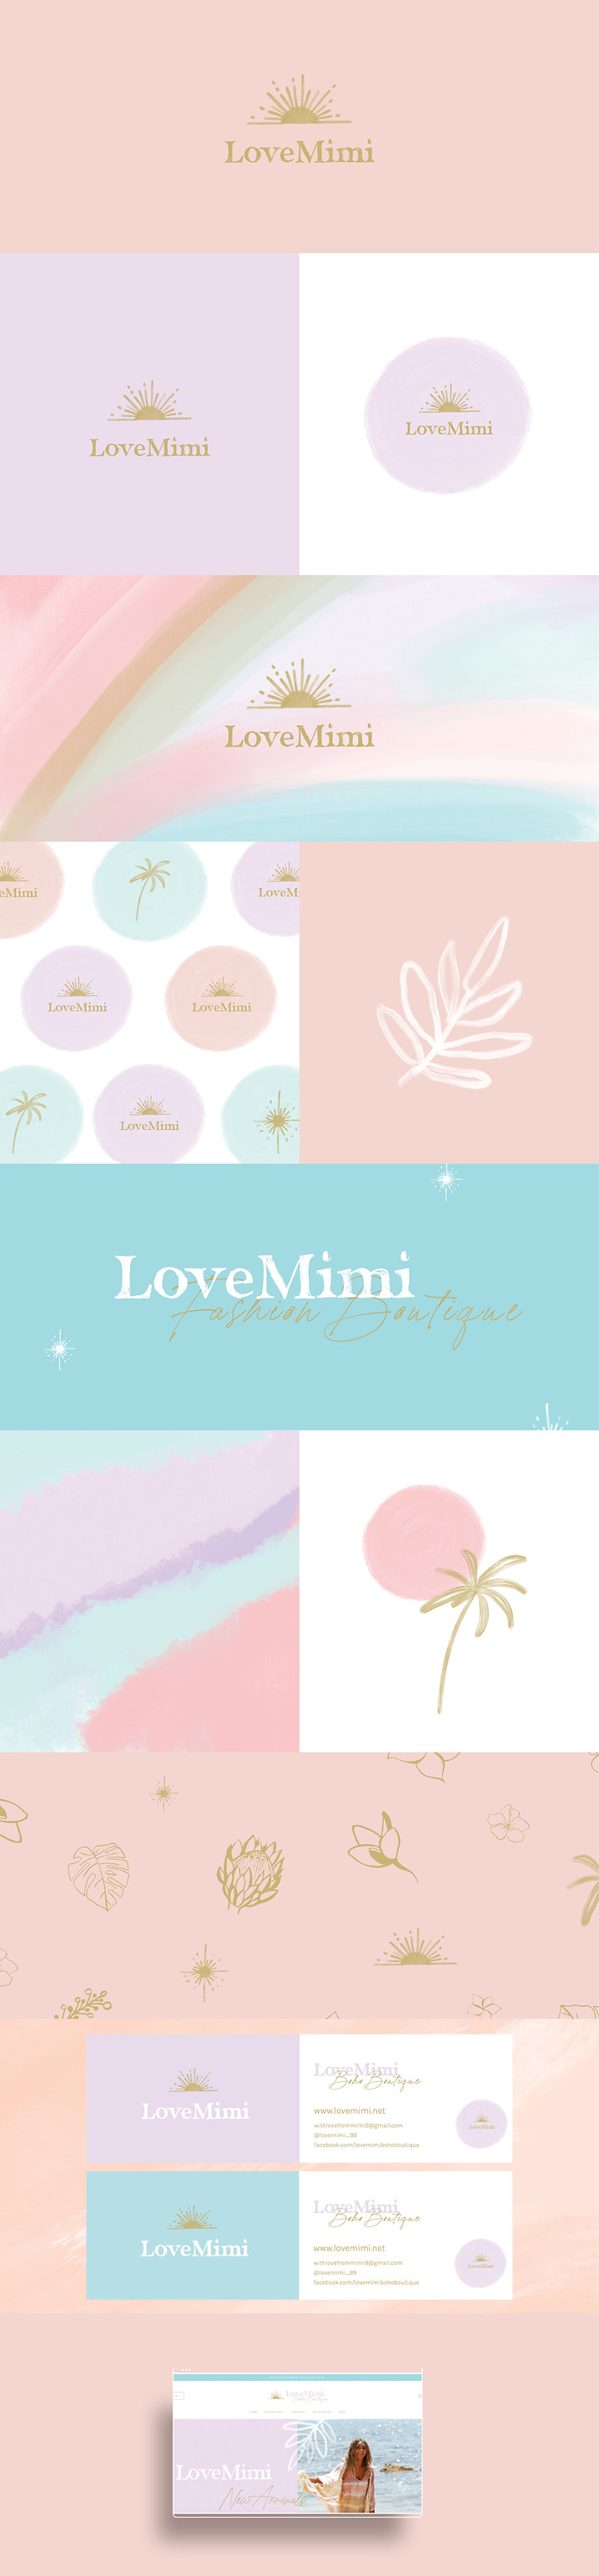 LoveMimi_Brand Board.jpg